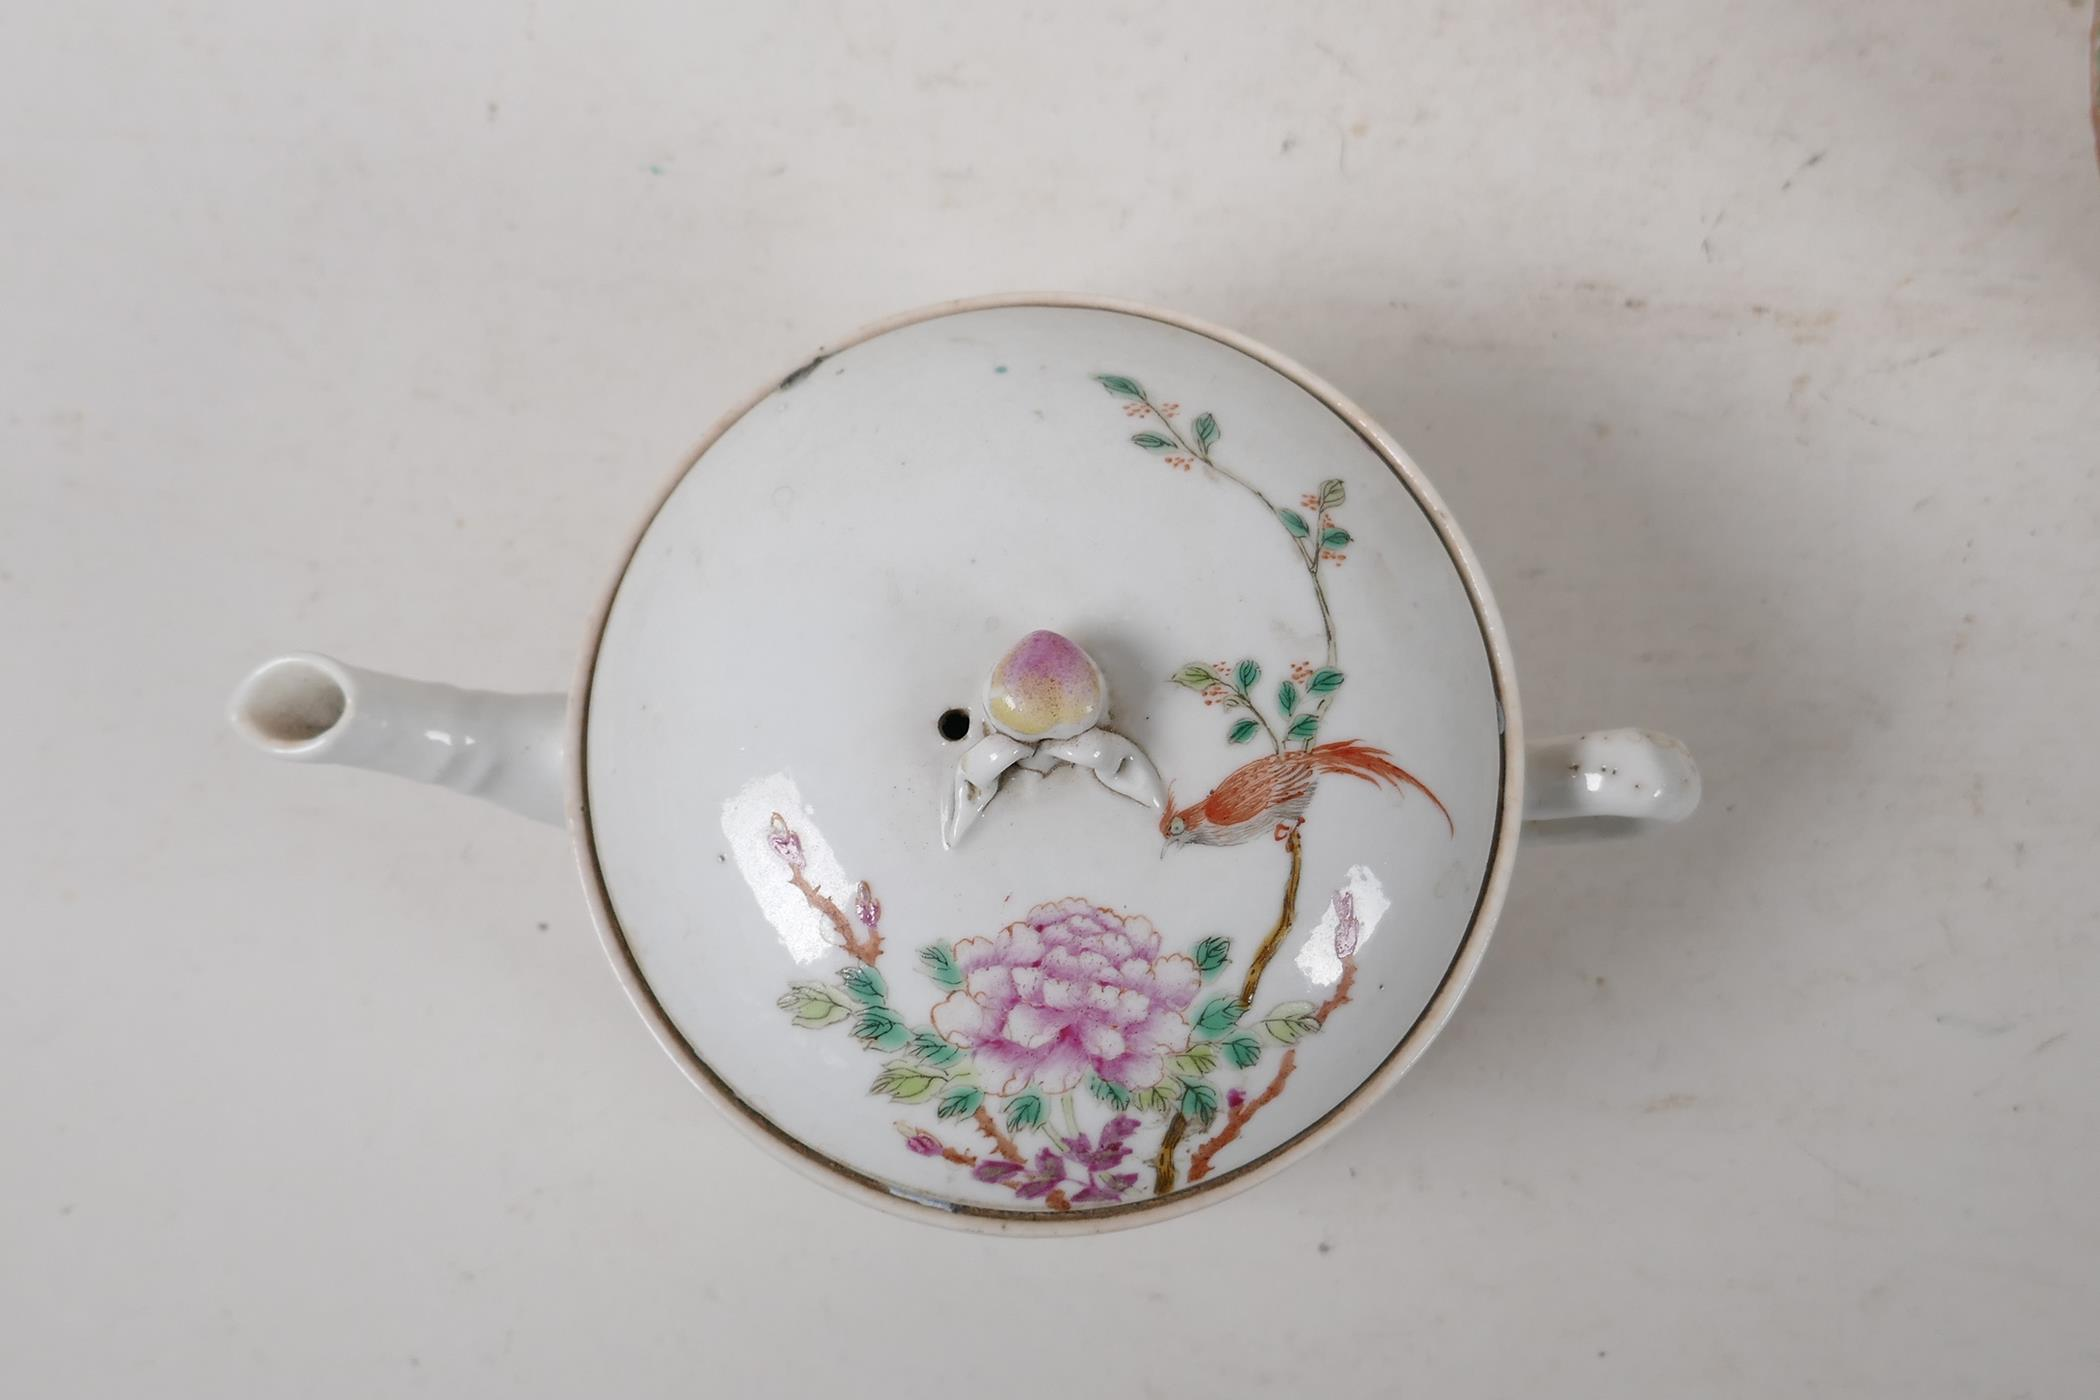 A Cantonese famille rose teapot decorated with figures, birds and flowers, A/F, and a republic - Image 3 of 7